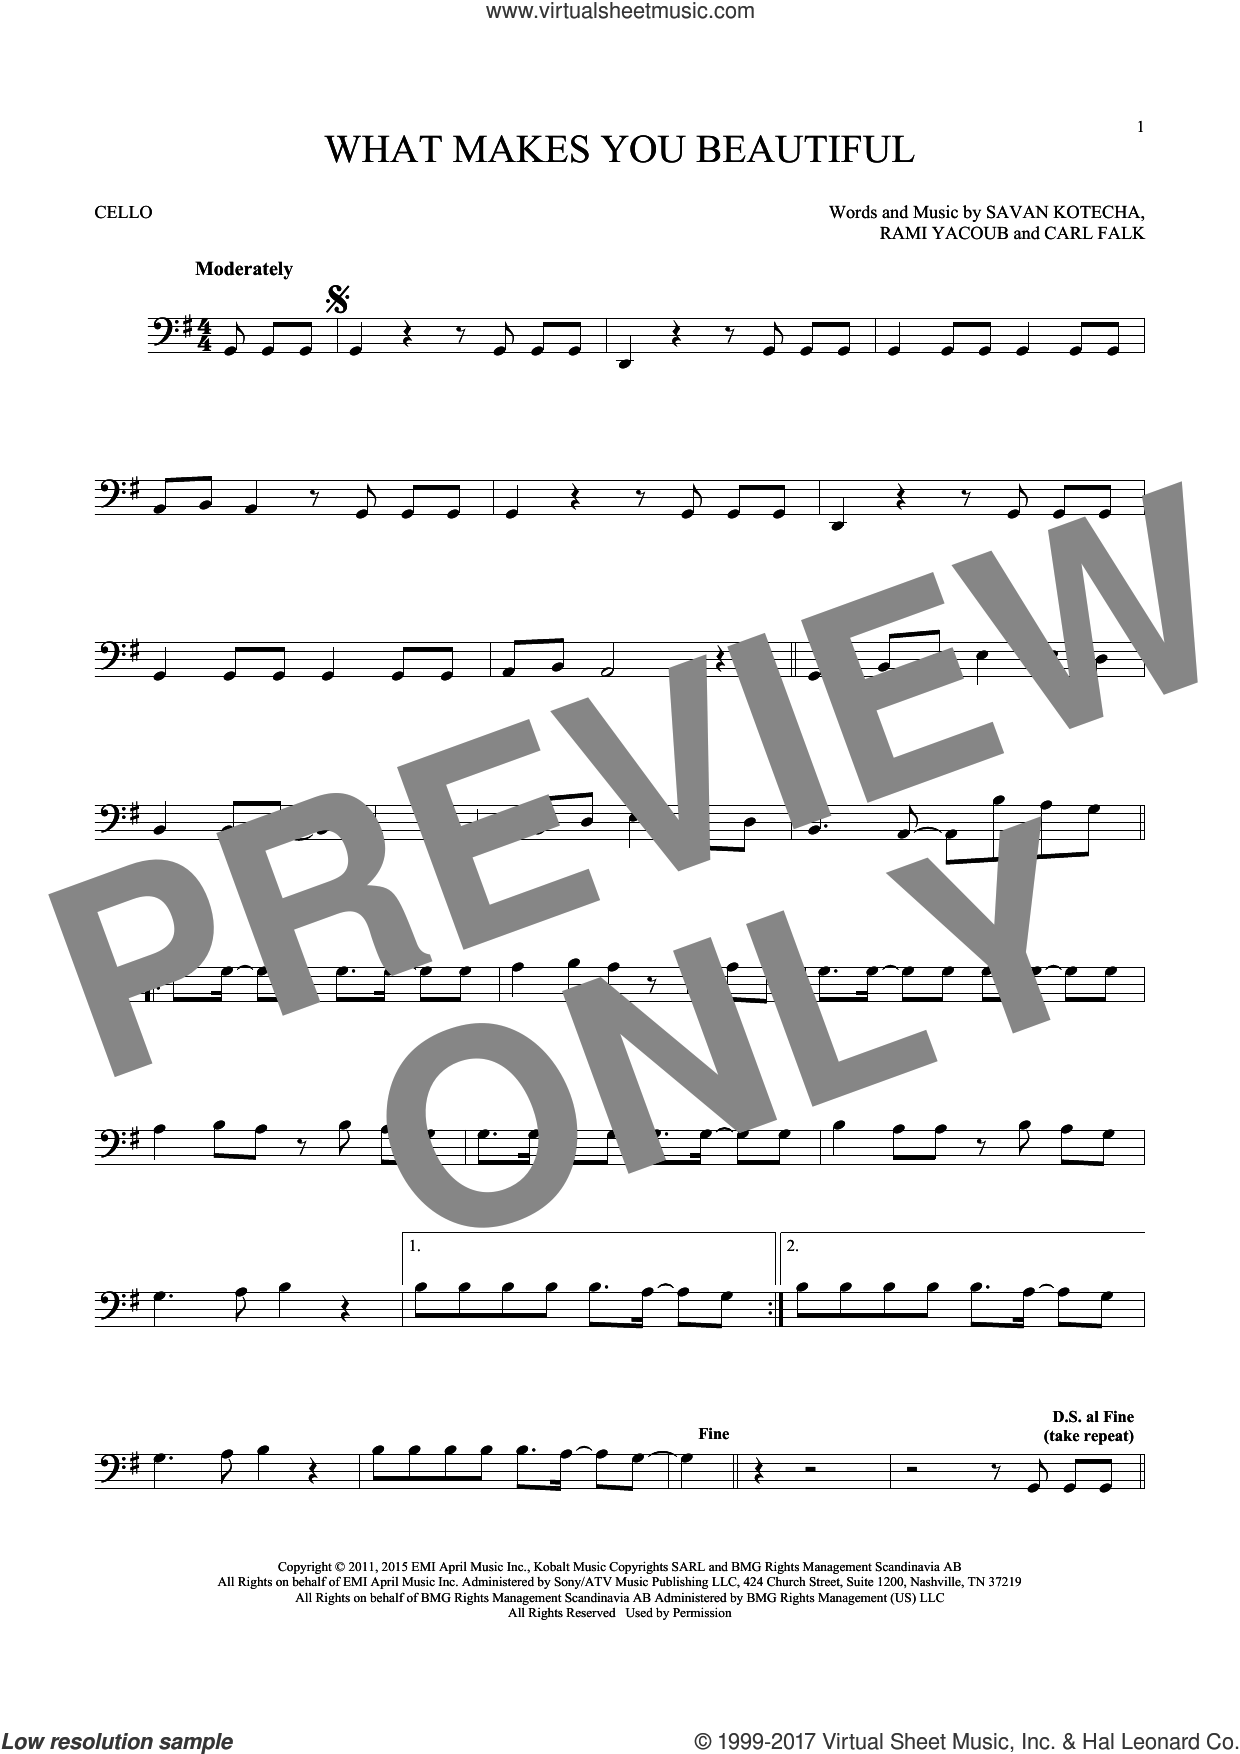 What Makes You Beautiful sheet music for cello solo by One Direction, Carl Falk, Rami and Savan Kotecha, intermediate skill level